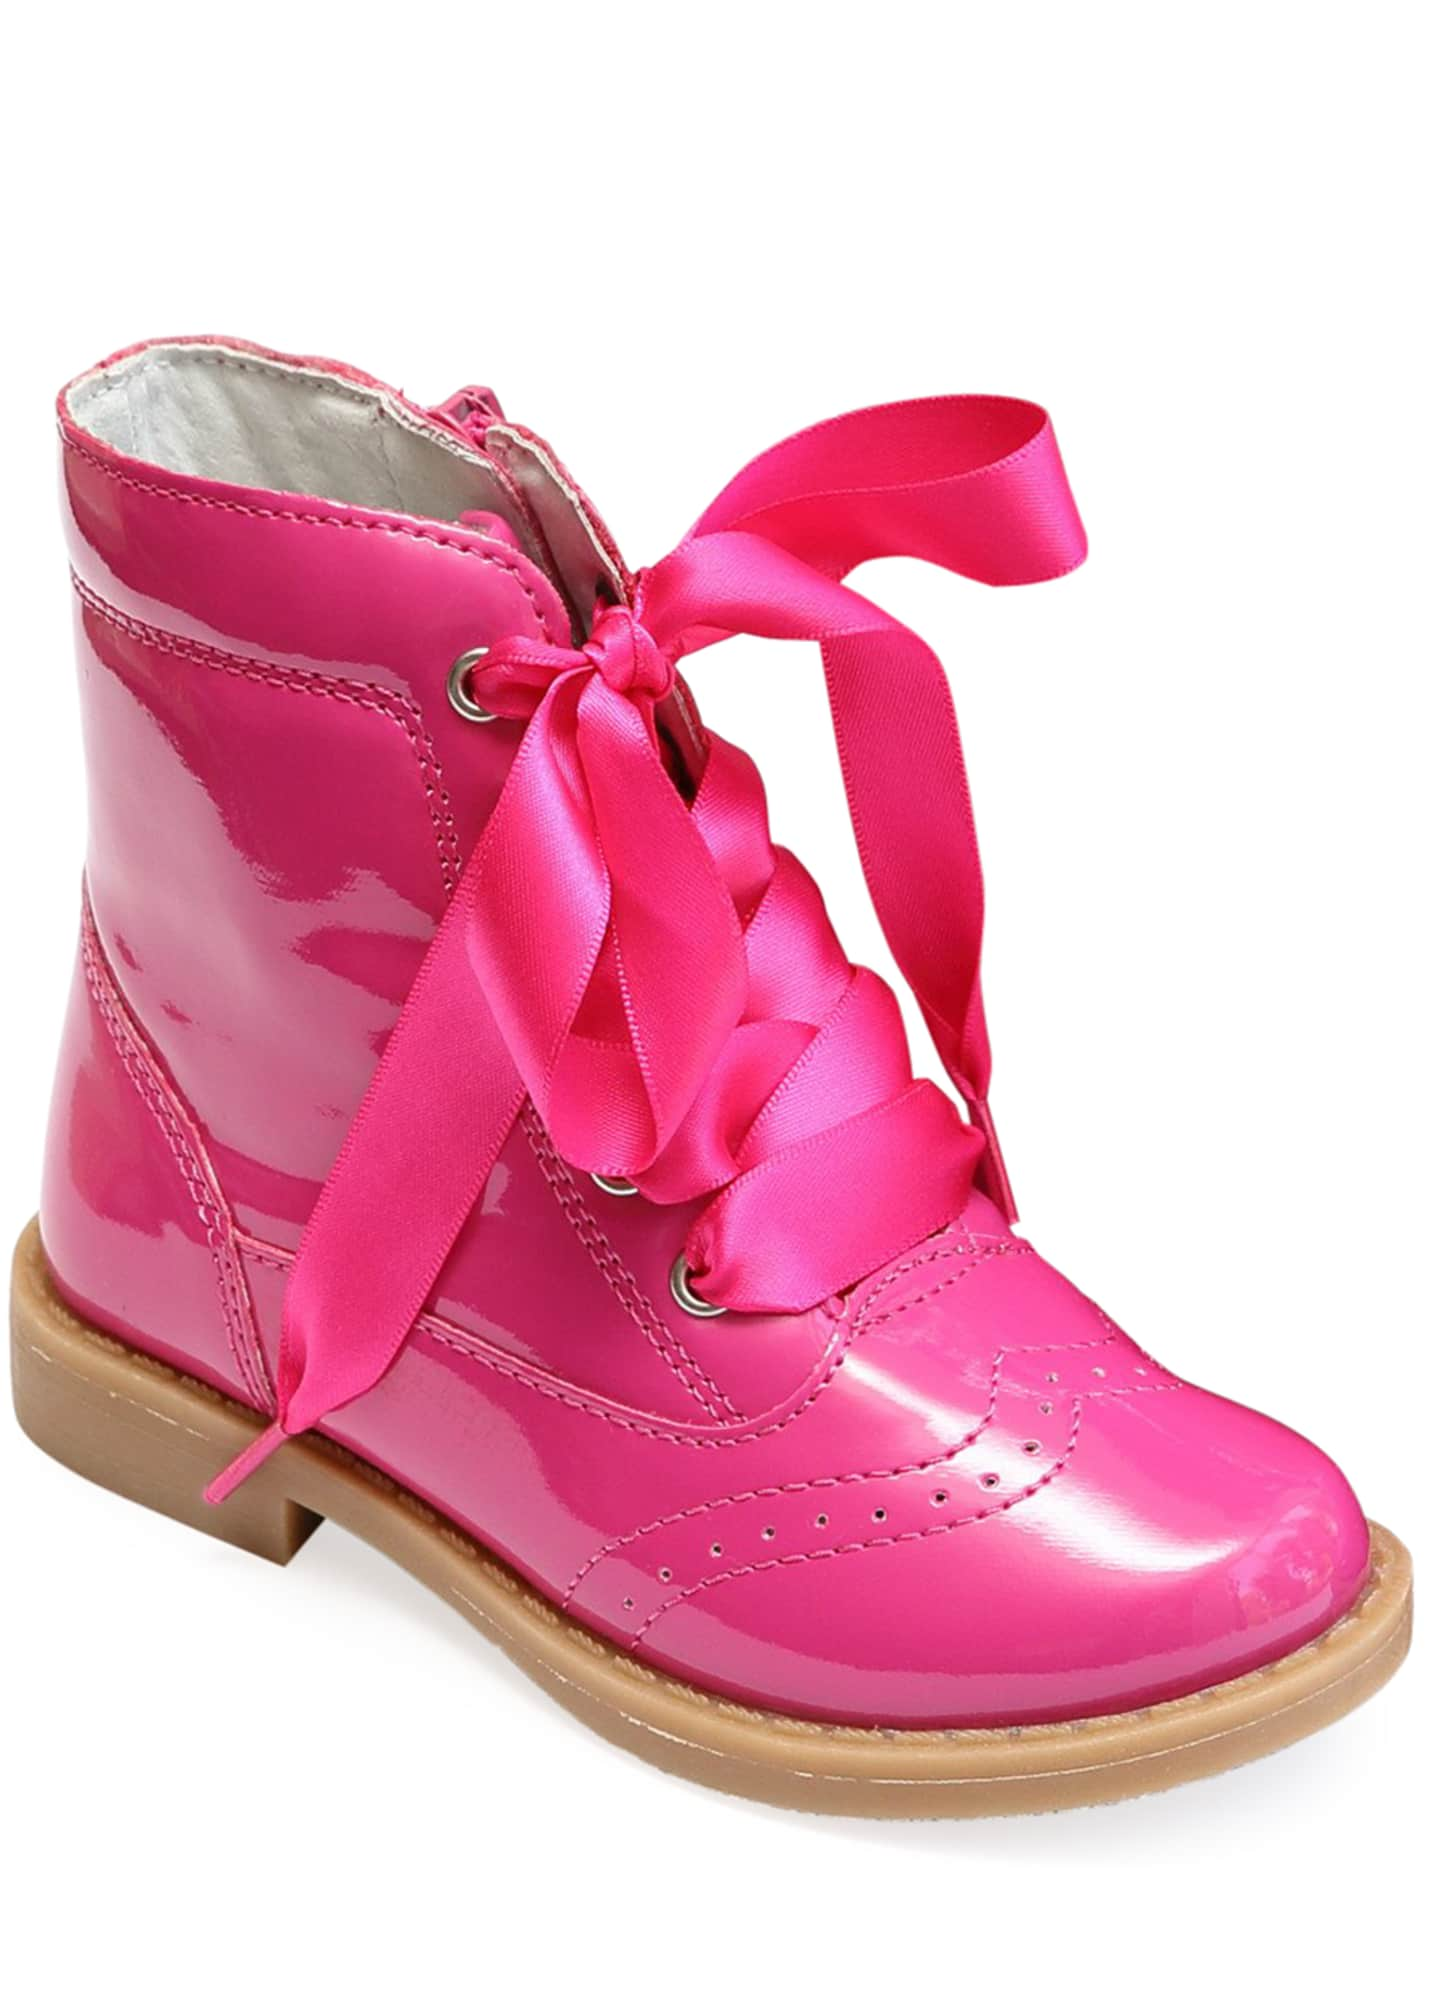 L'Amour Shoes Stella Patent Leather Mid-Top Boot,